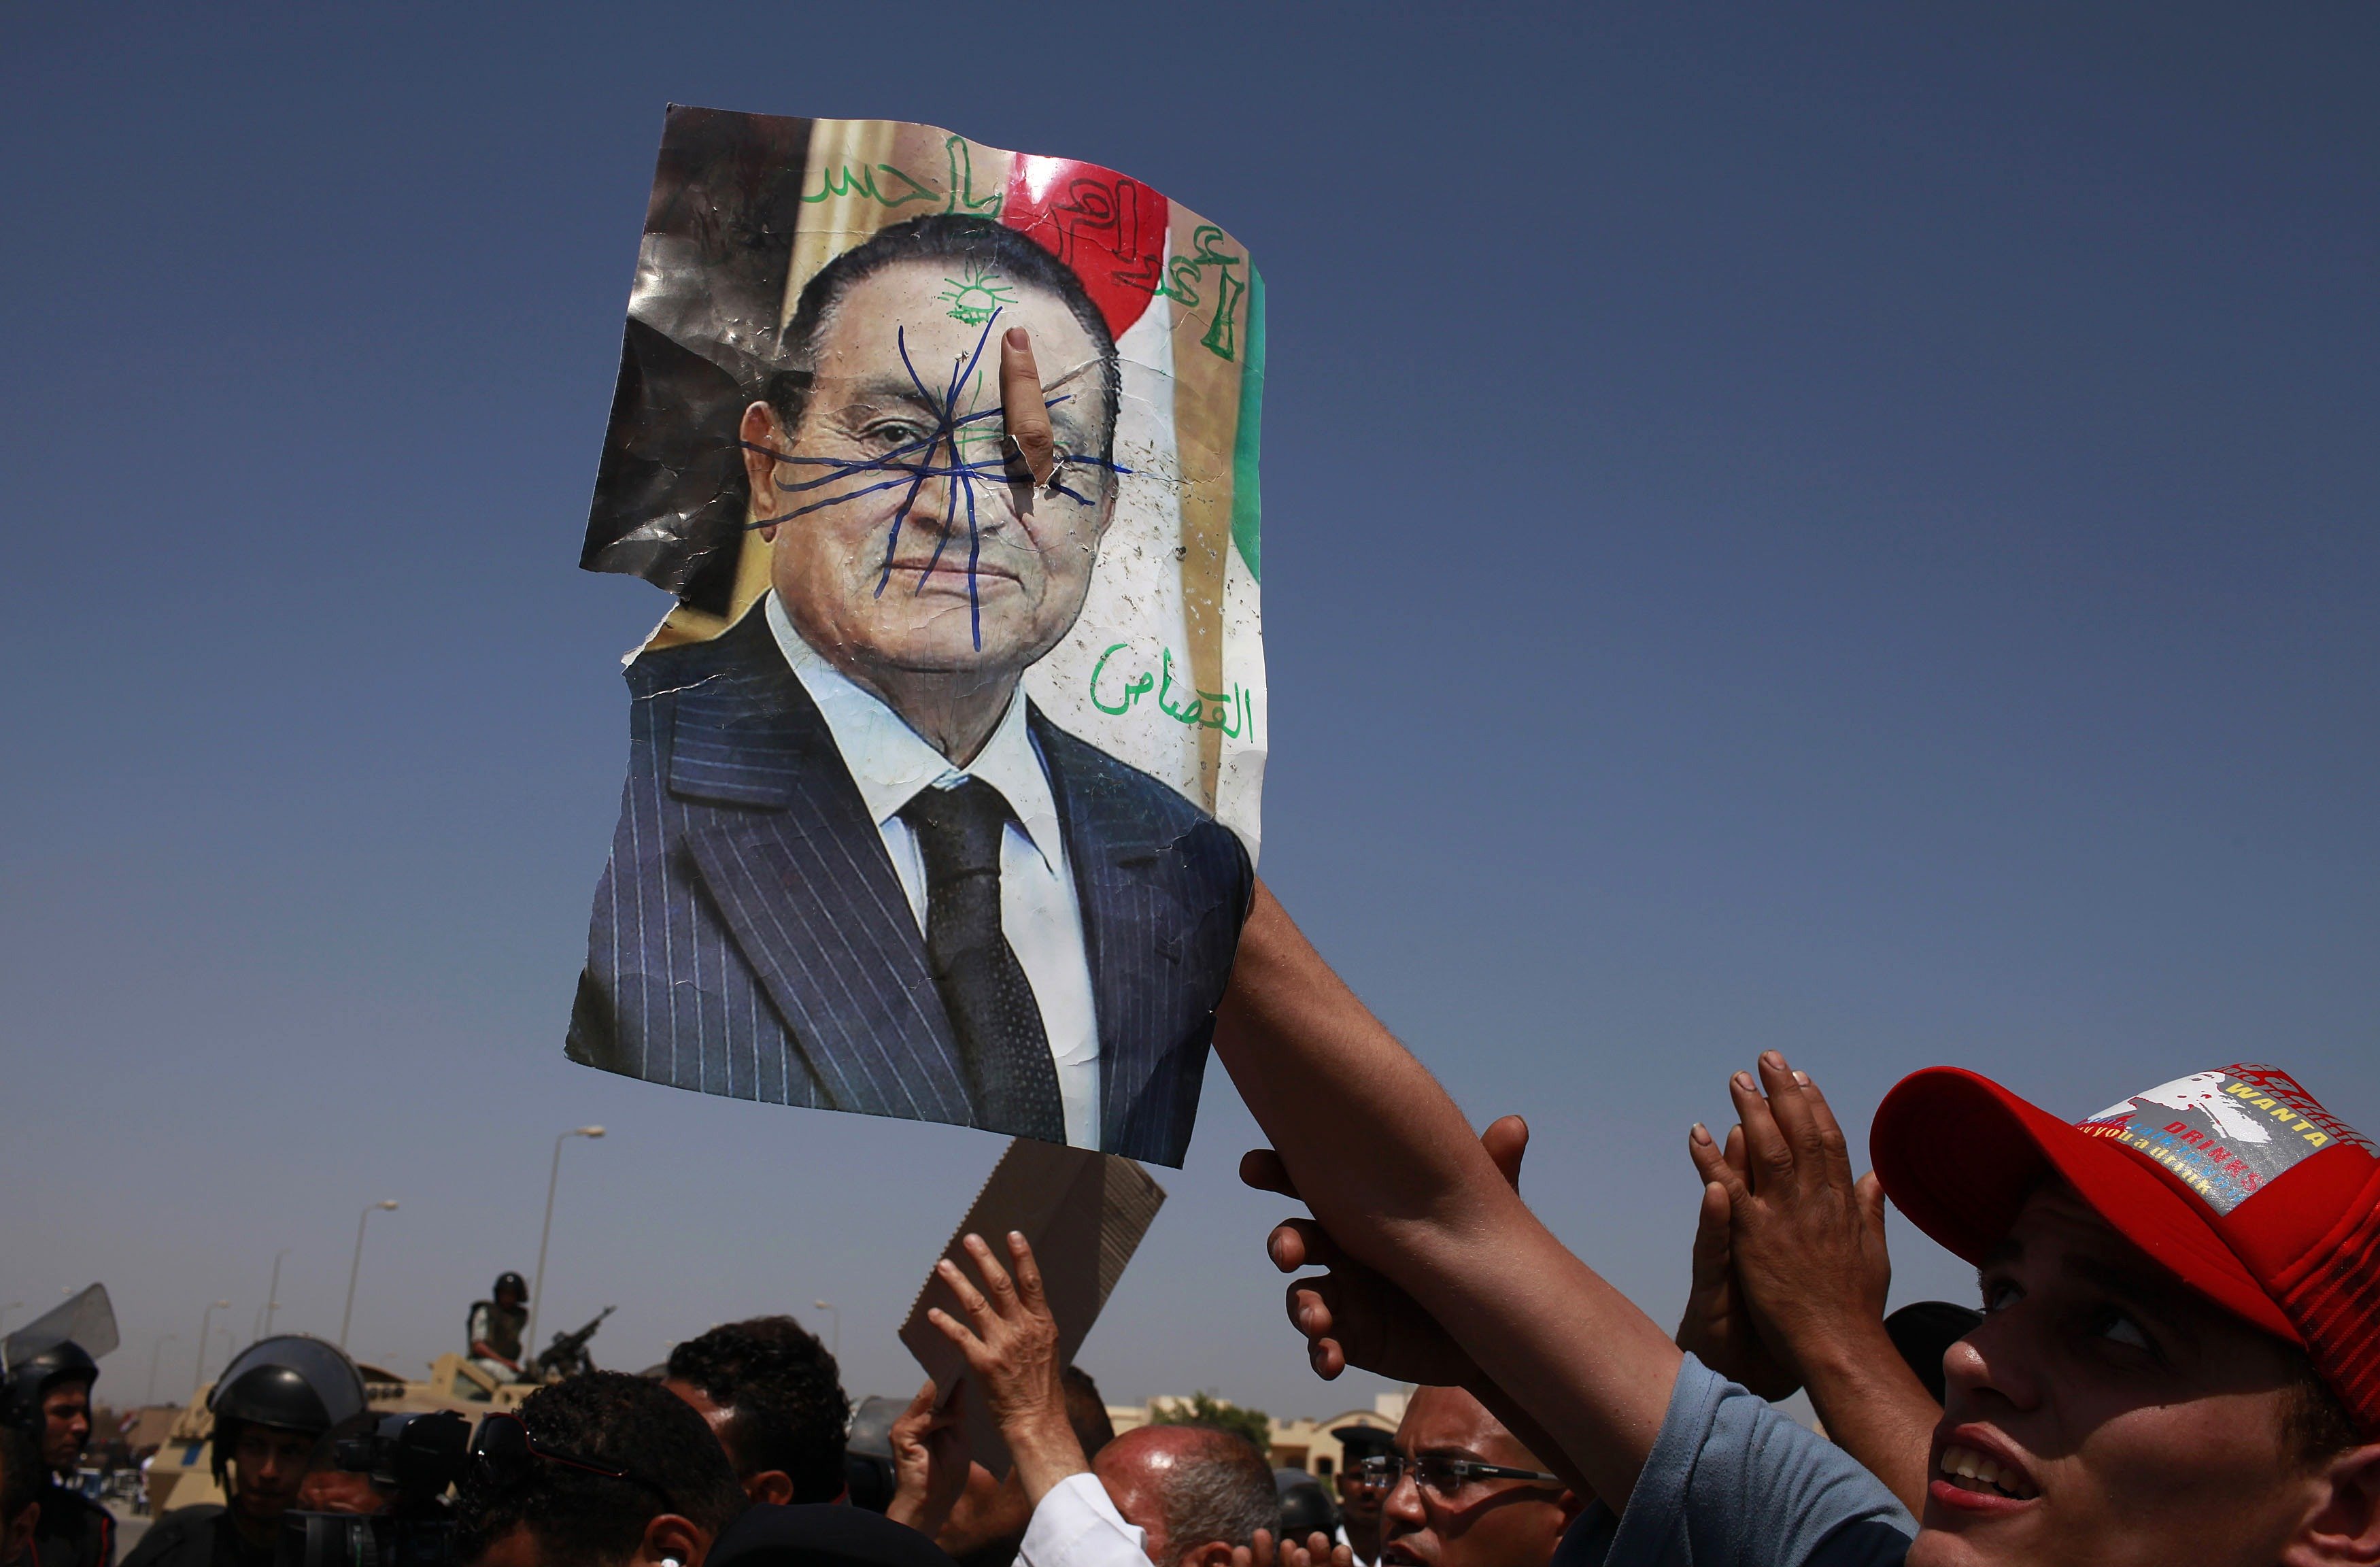 UPDATE - Court drops case against Mubarak over complicity in killing protesters